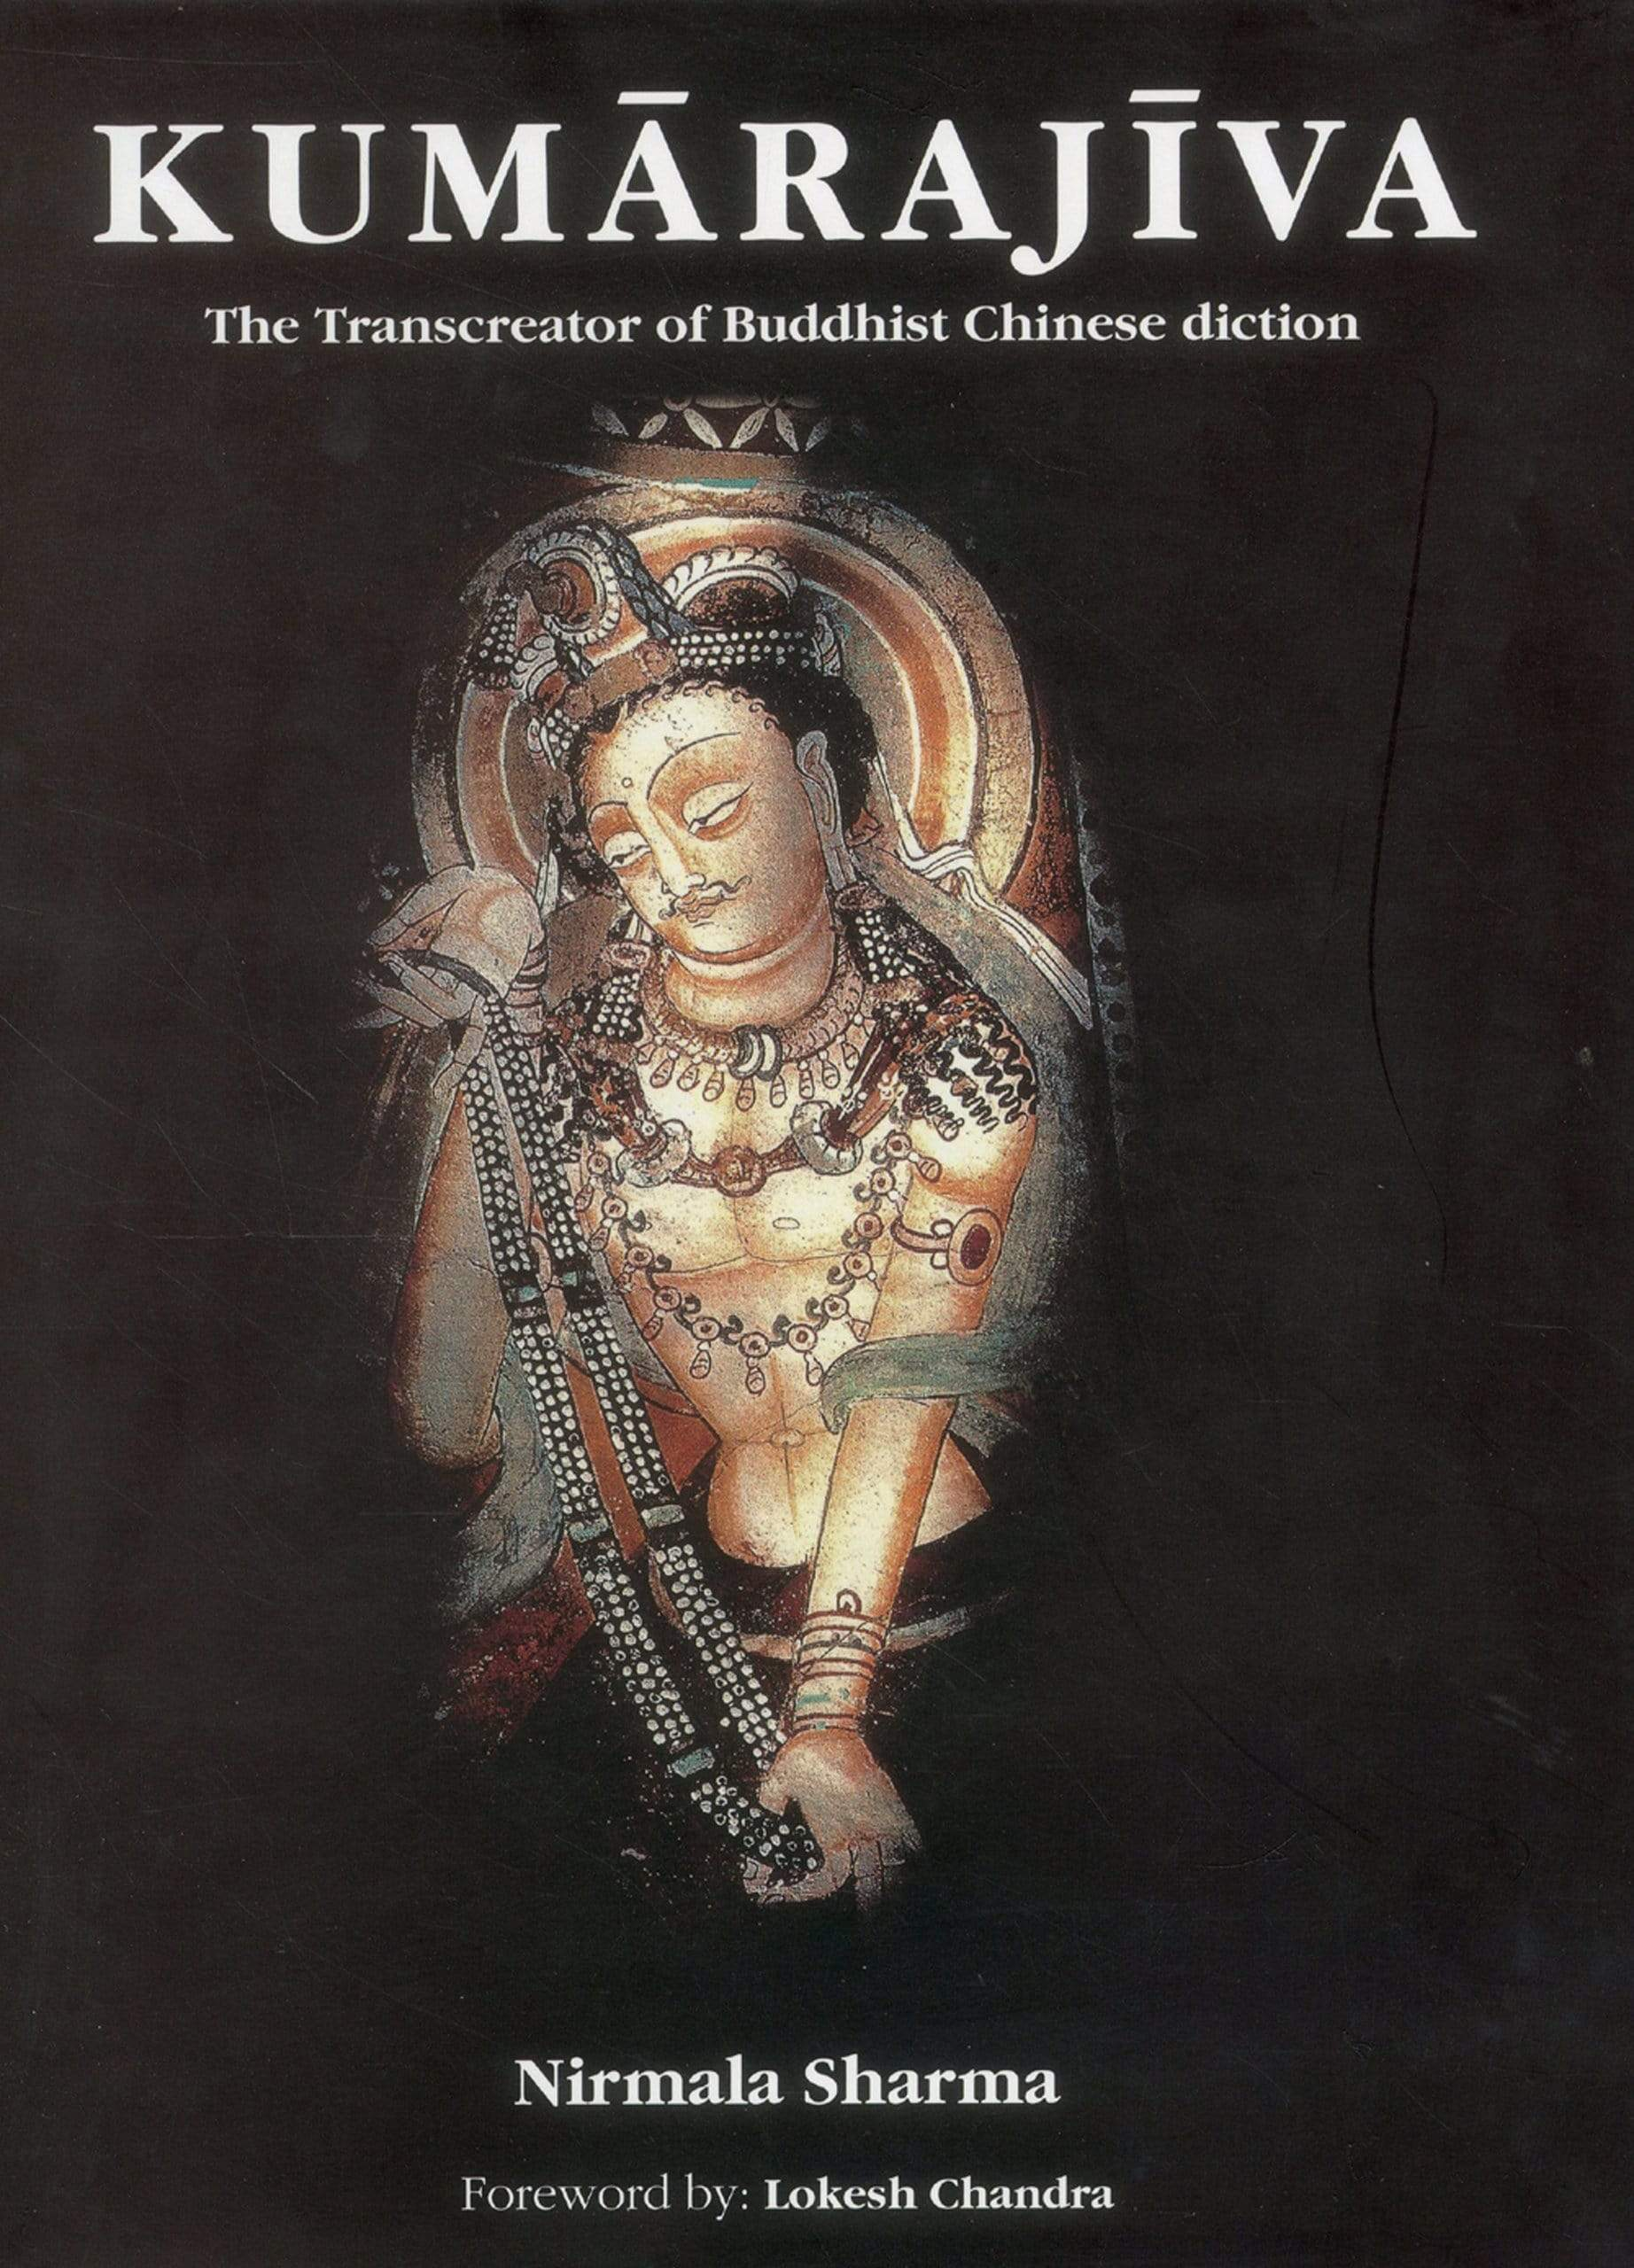 Kumarajiva: The Transcreator of Buddhist Chinese Diction